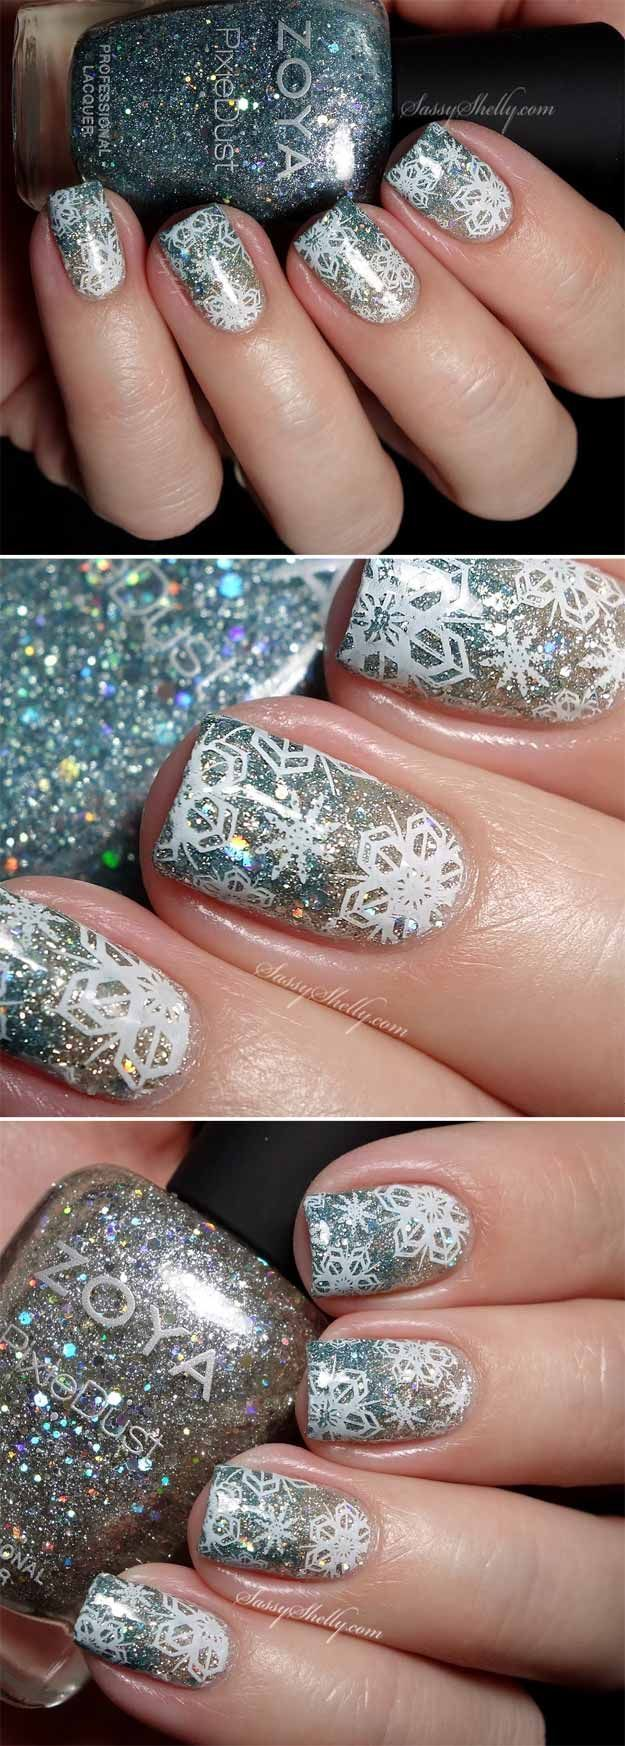 35 Nail Design Ideas For The Latest Autumn Winter Trends: 35 Christmas Nail Art Designs